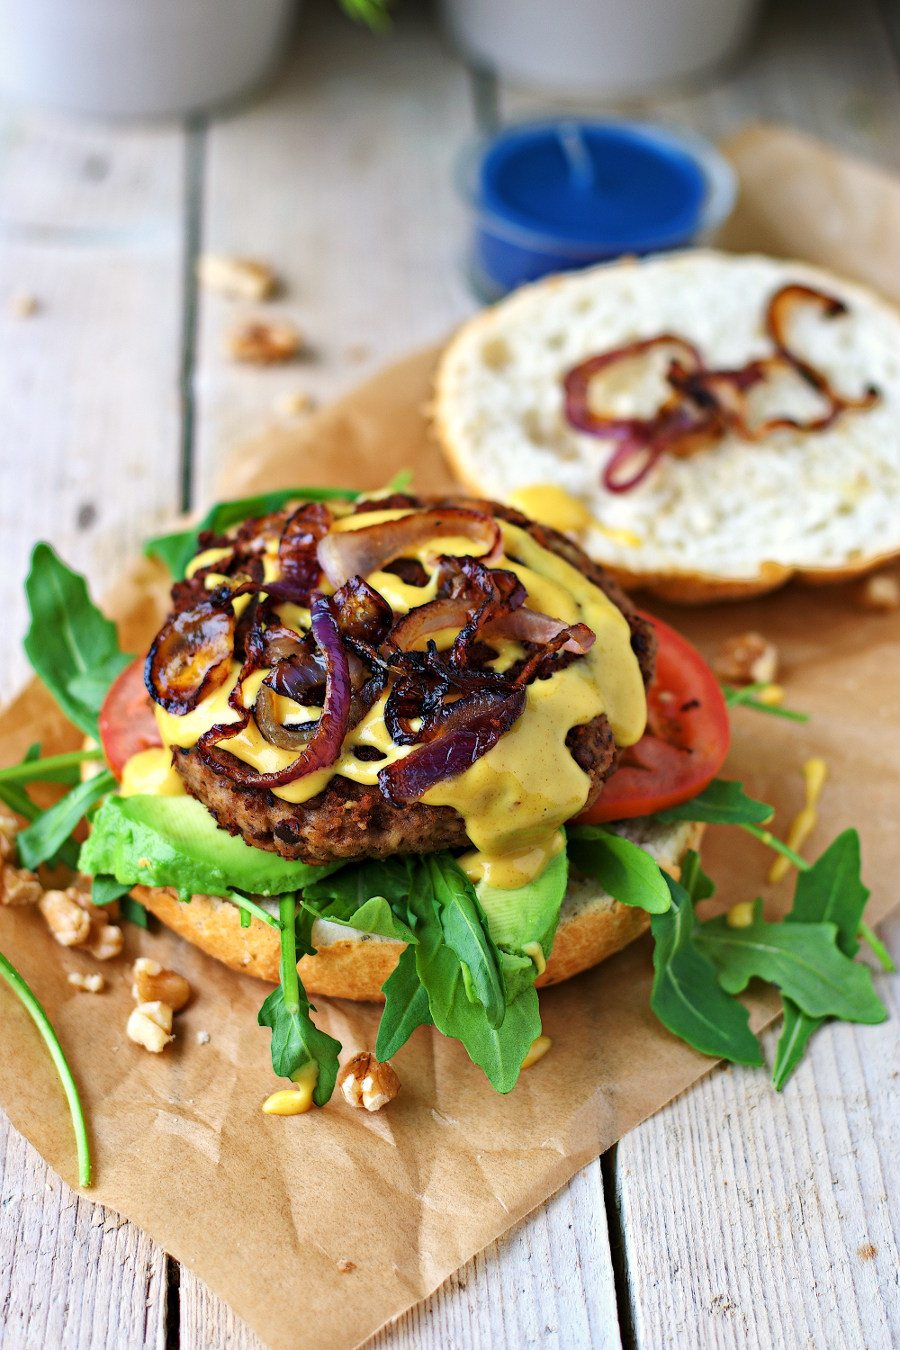 The Vegan Lentil Burger is topped with fried red onions.